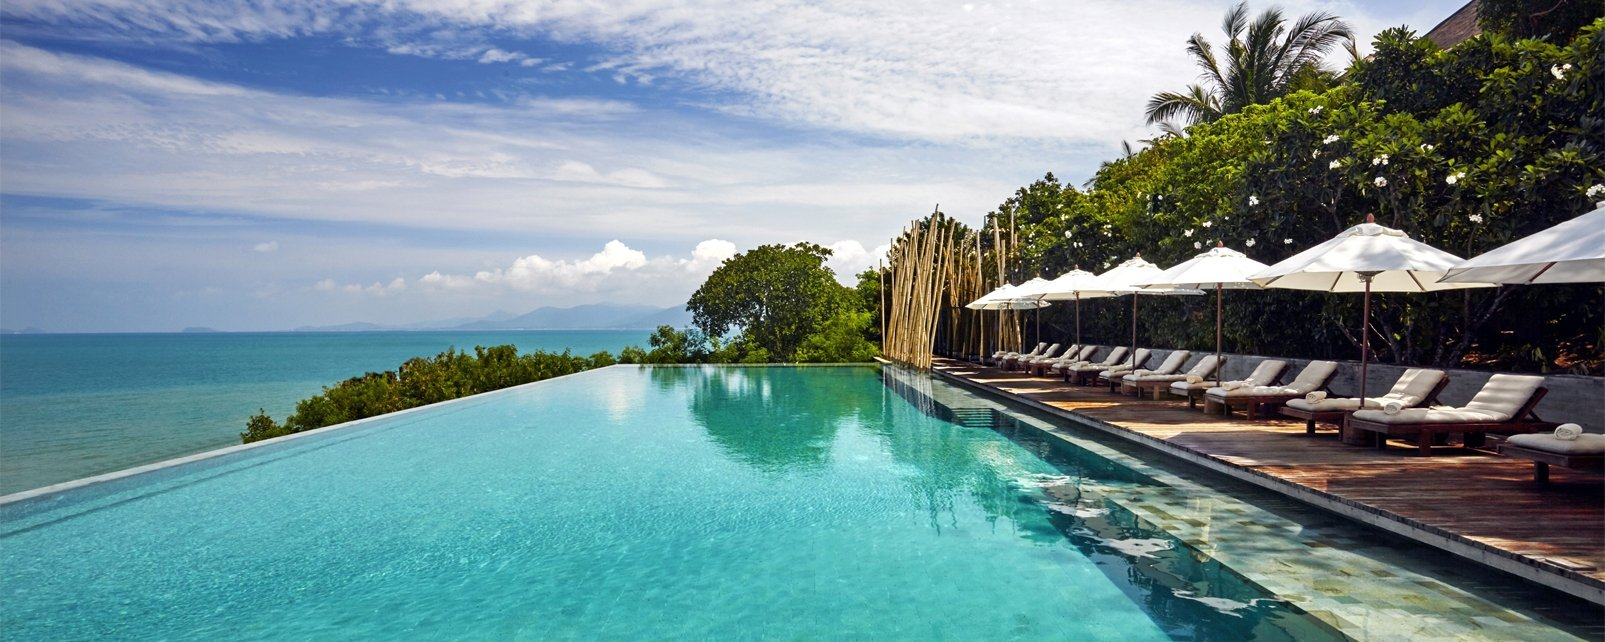 Hotel Six Senses Samui